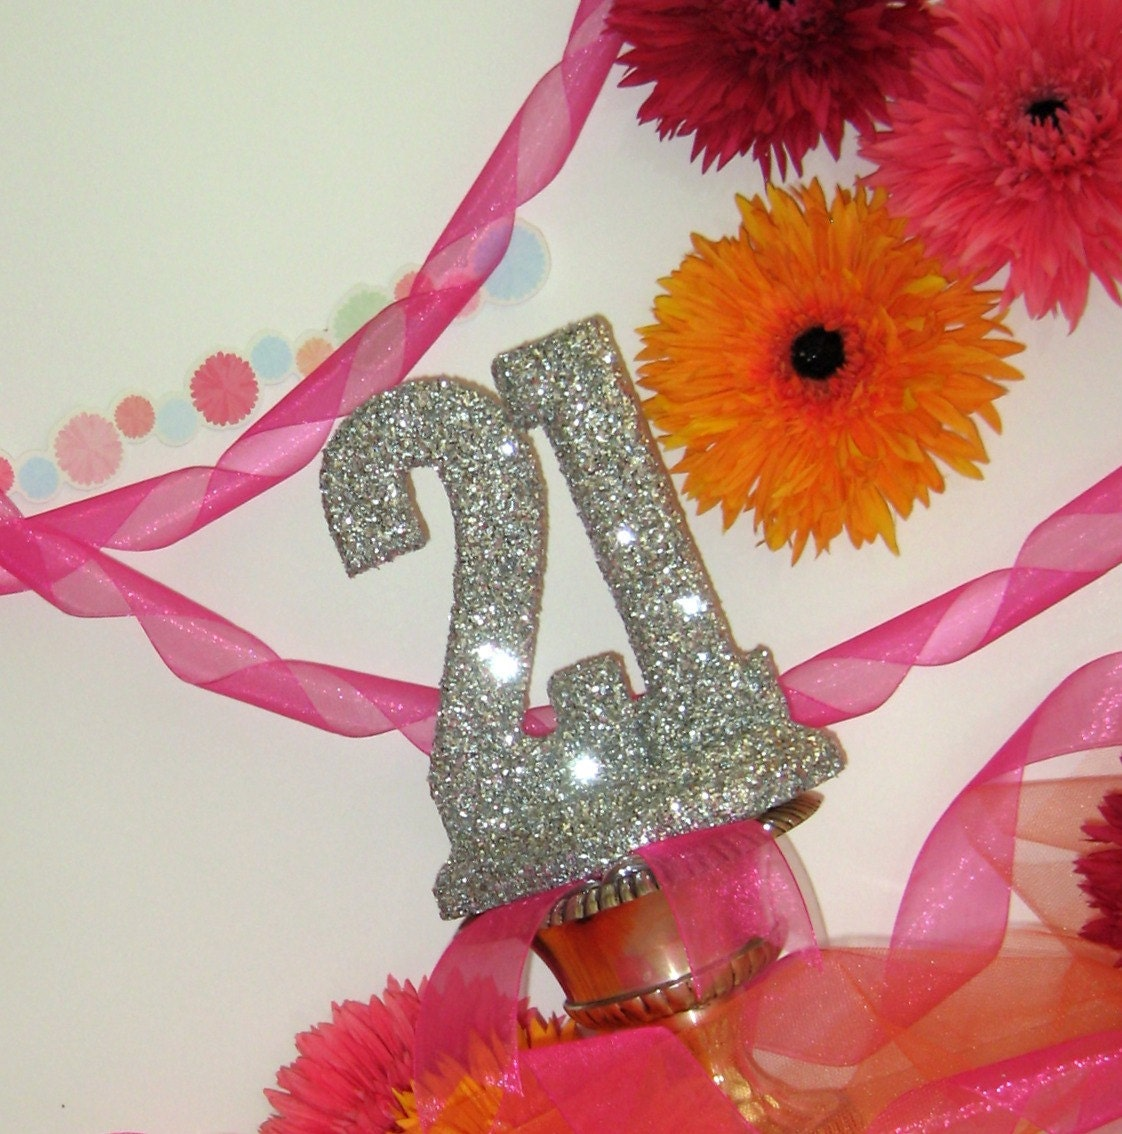 21st BIRTHDAY CAKE TOPPER Decorations By OHONEFINEDAY On Etsy